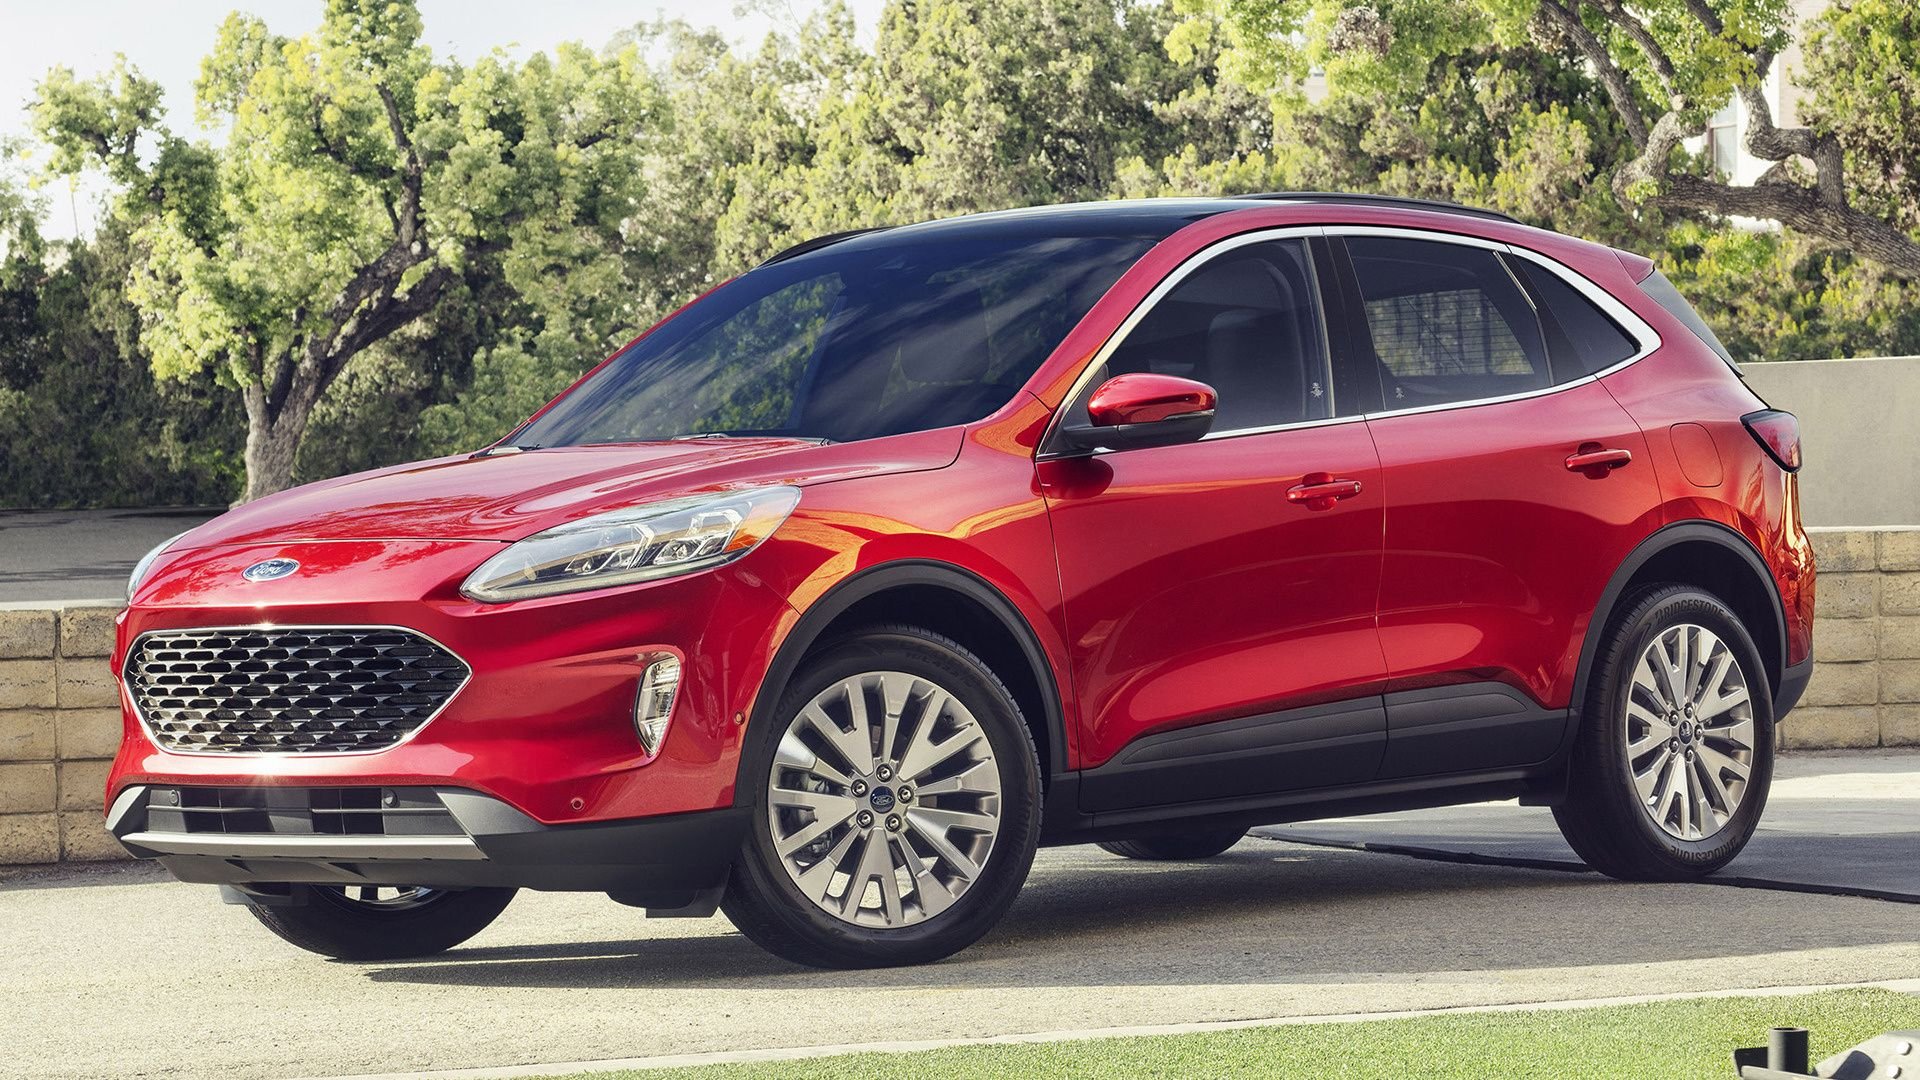 30 The 2020 Ford Escape Research New 2020